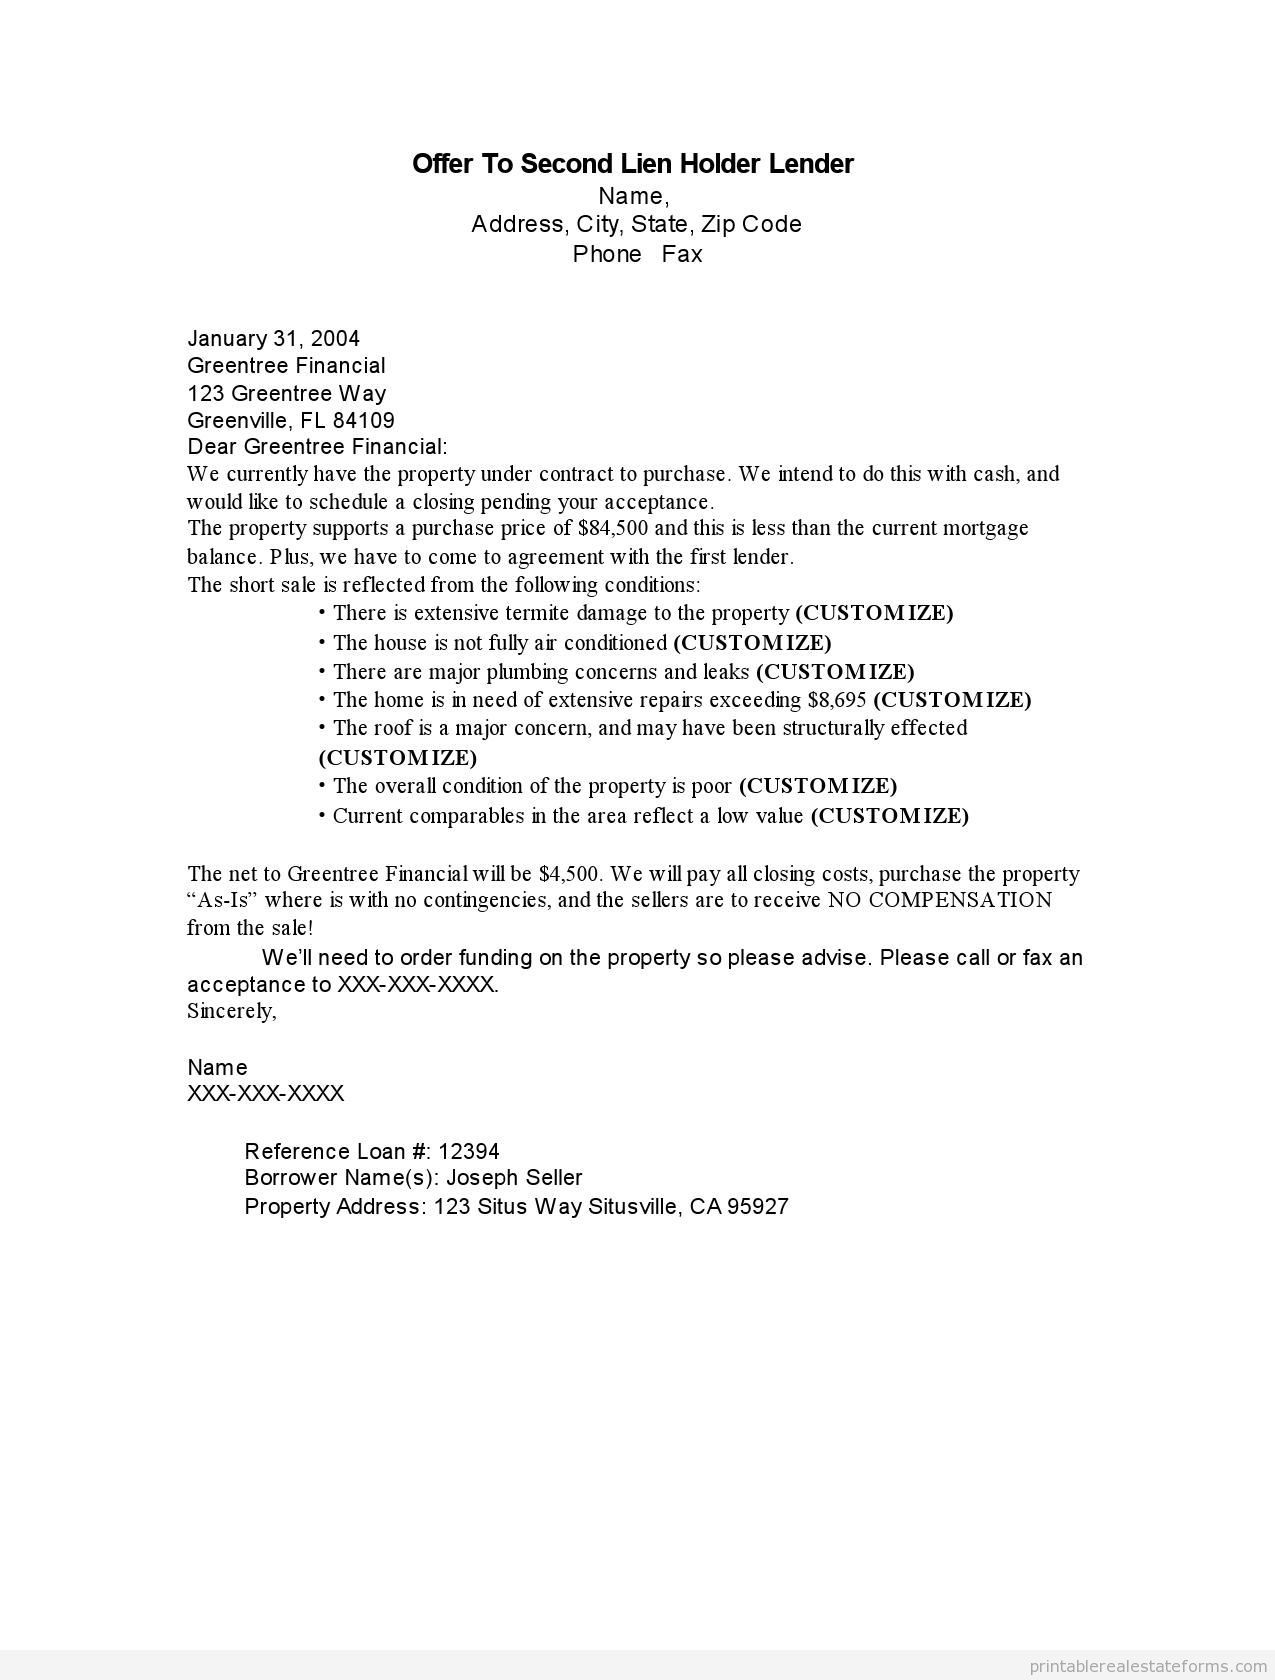 Lien Demand Letter Template - Letter Intent to Lien Sample Printable Fer Second Holder Lender